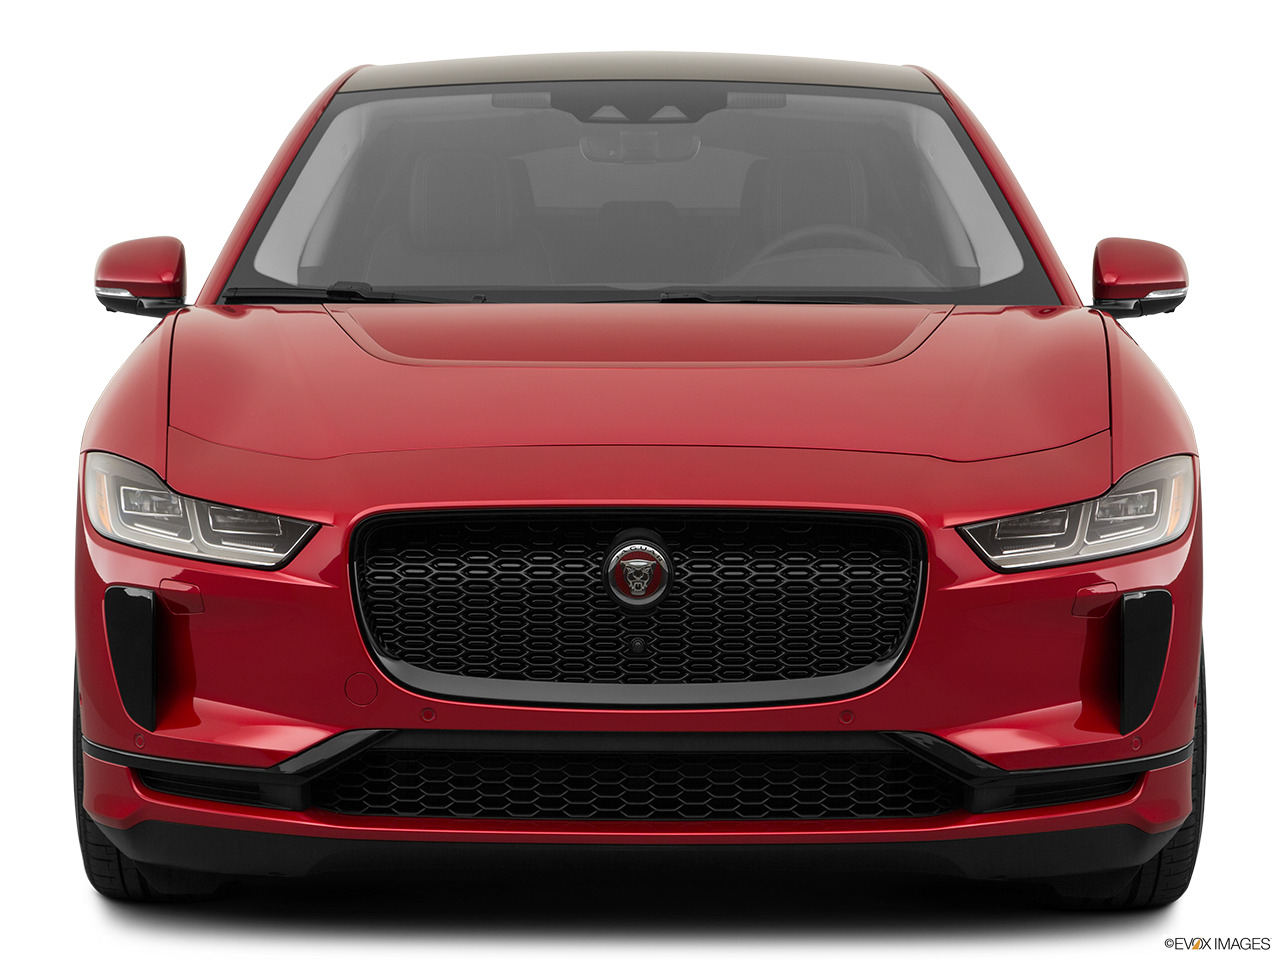 Front view of the Jaguar I-Pace